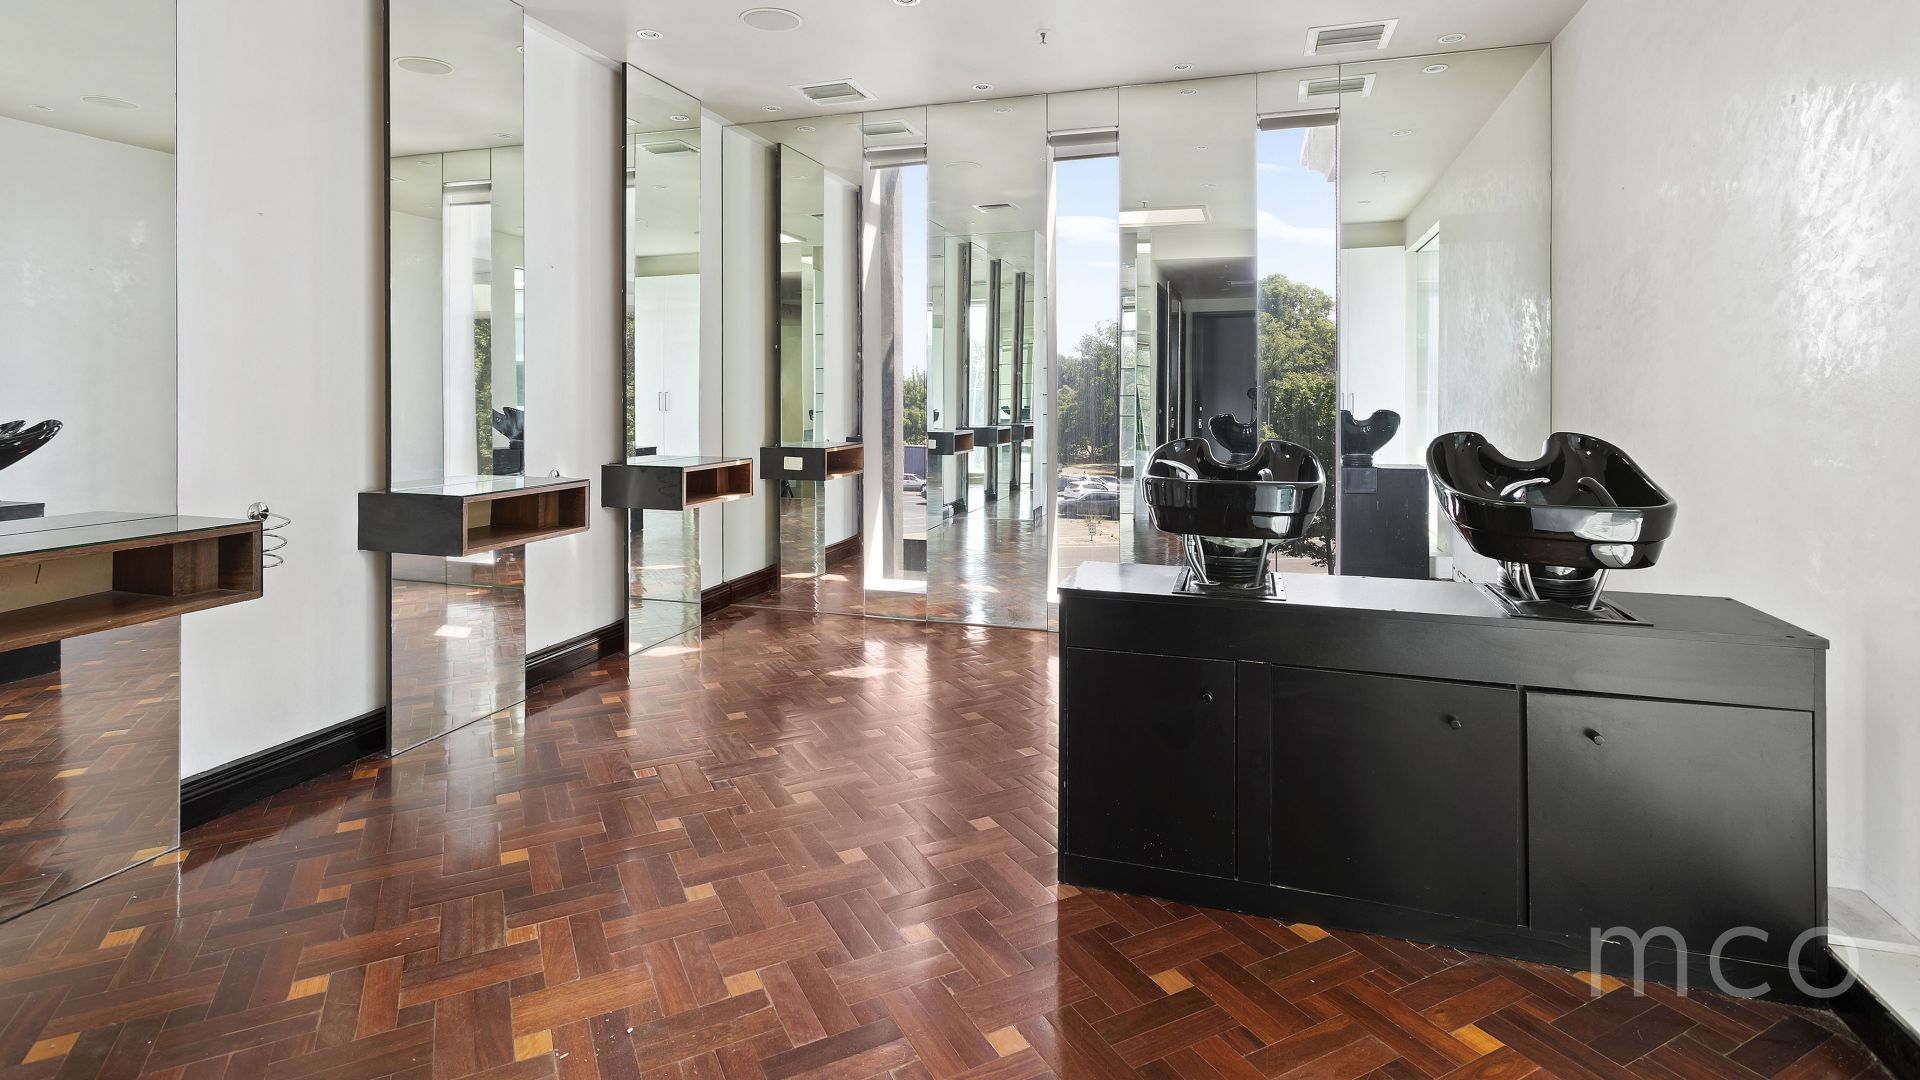 Retail or professional office space with plumbing available for lease at St Kilda Rd Towers